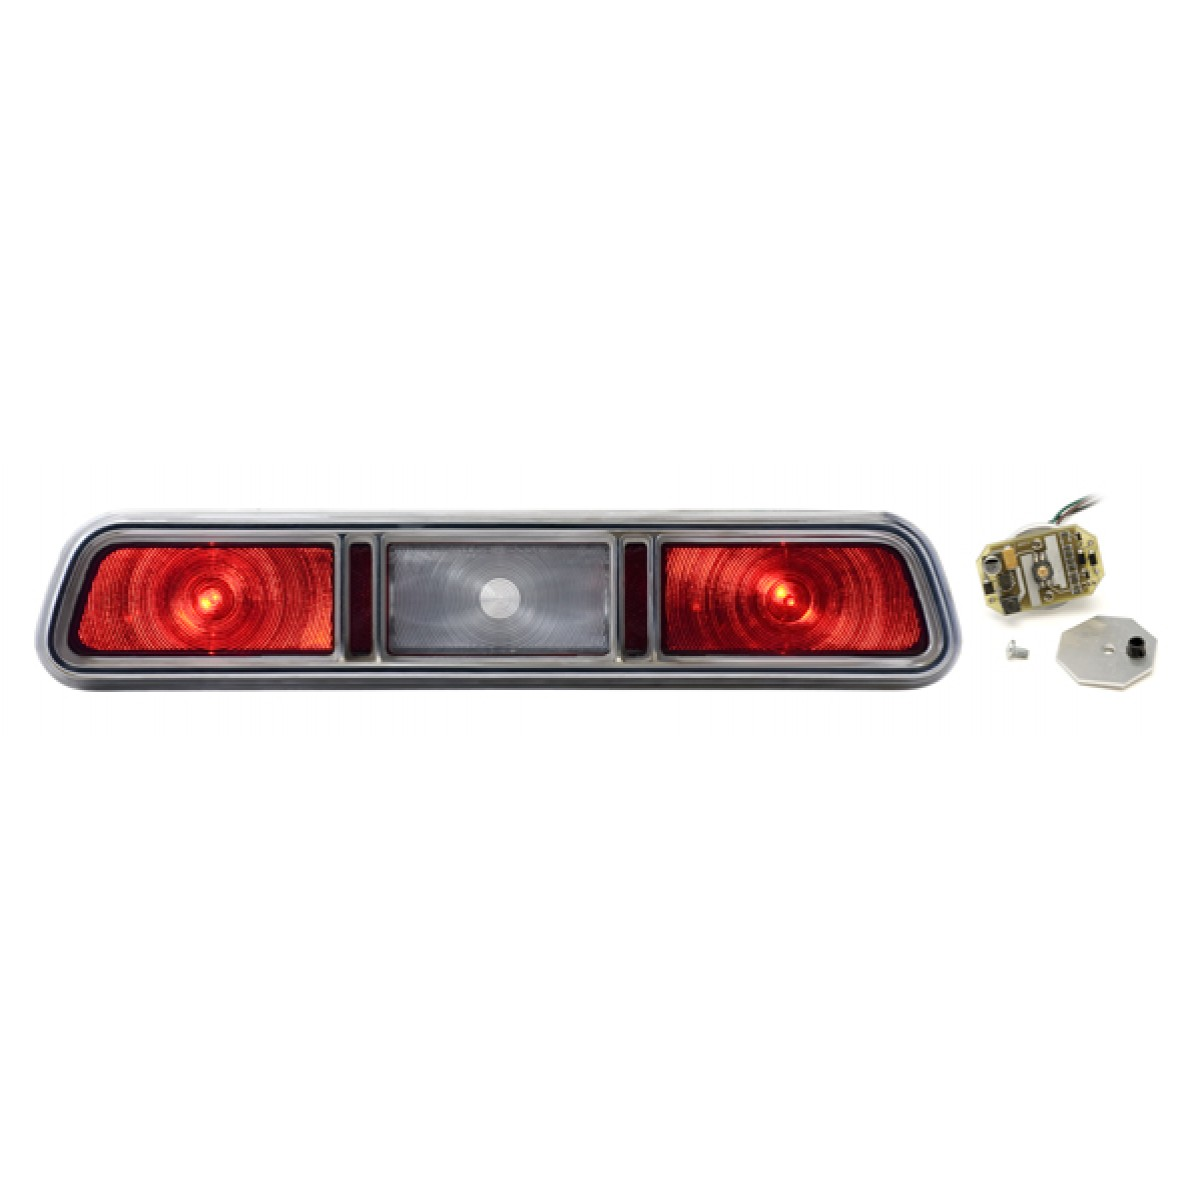 hight resolution of 1967 chevy impala led tail lights dakota digital lat nr161chevy impala tail light wire harness